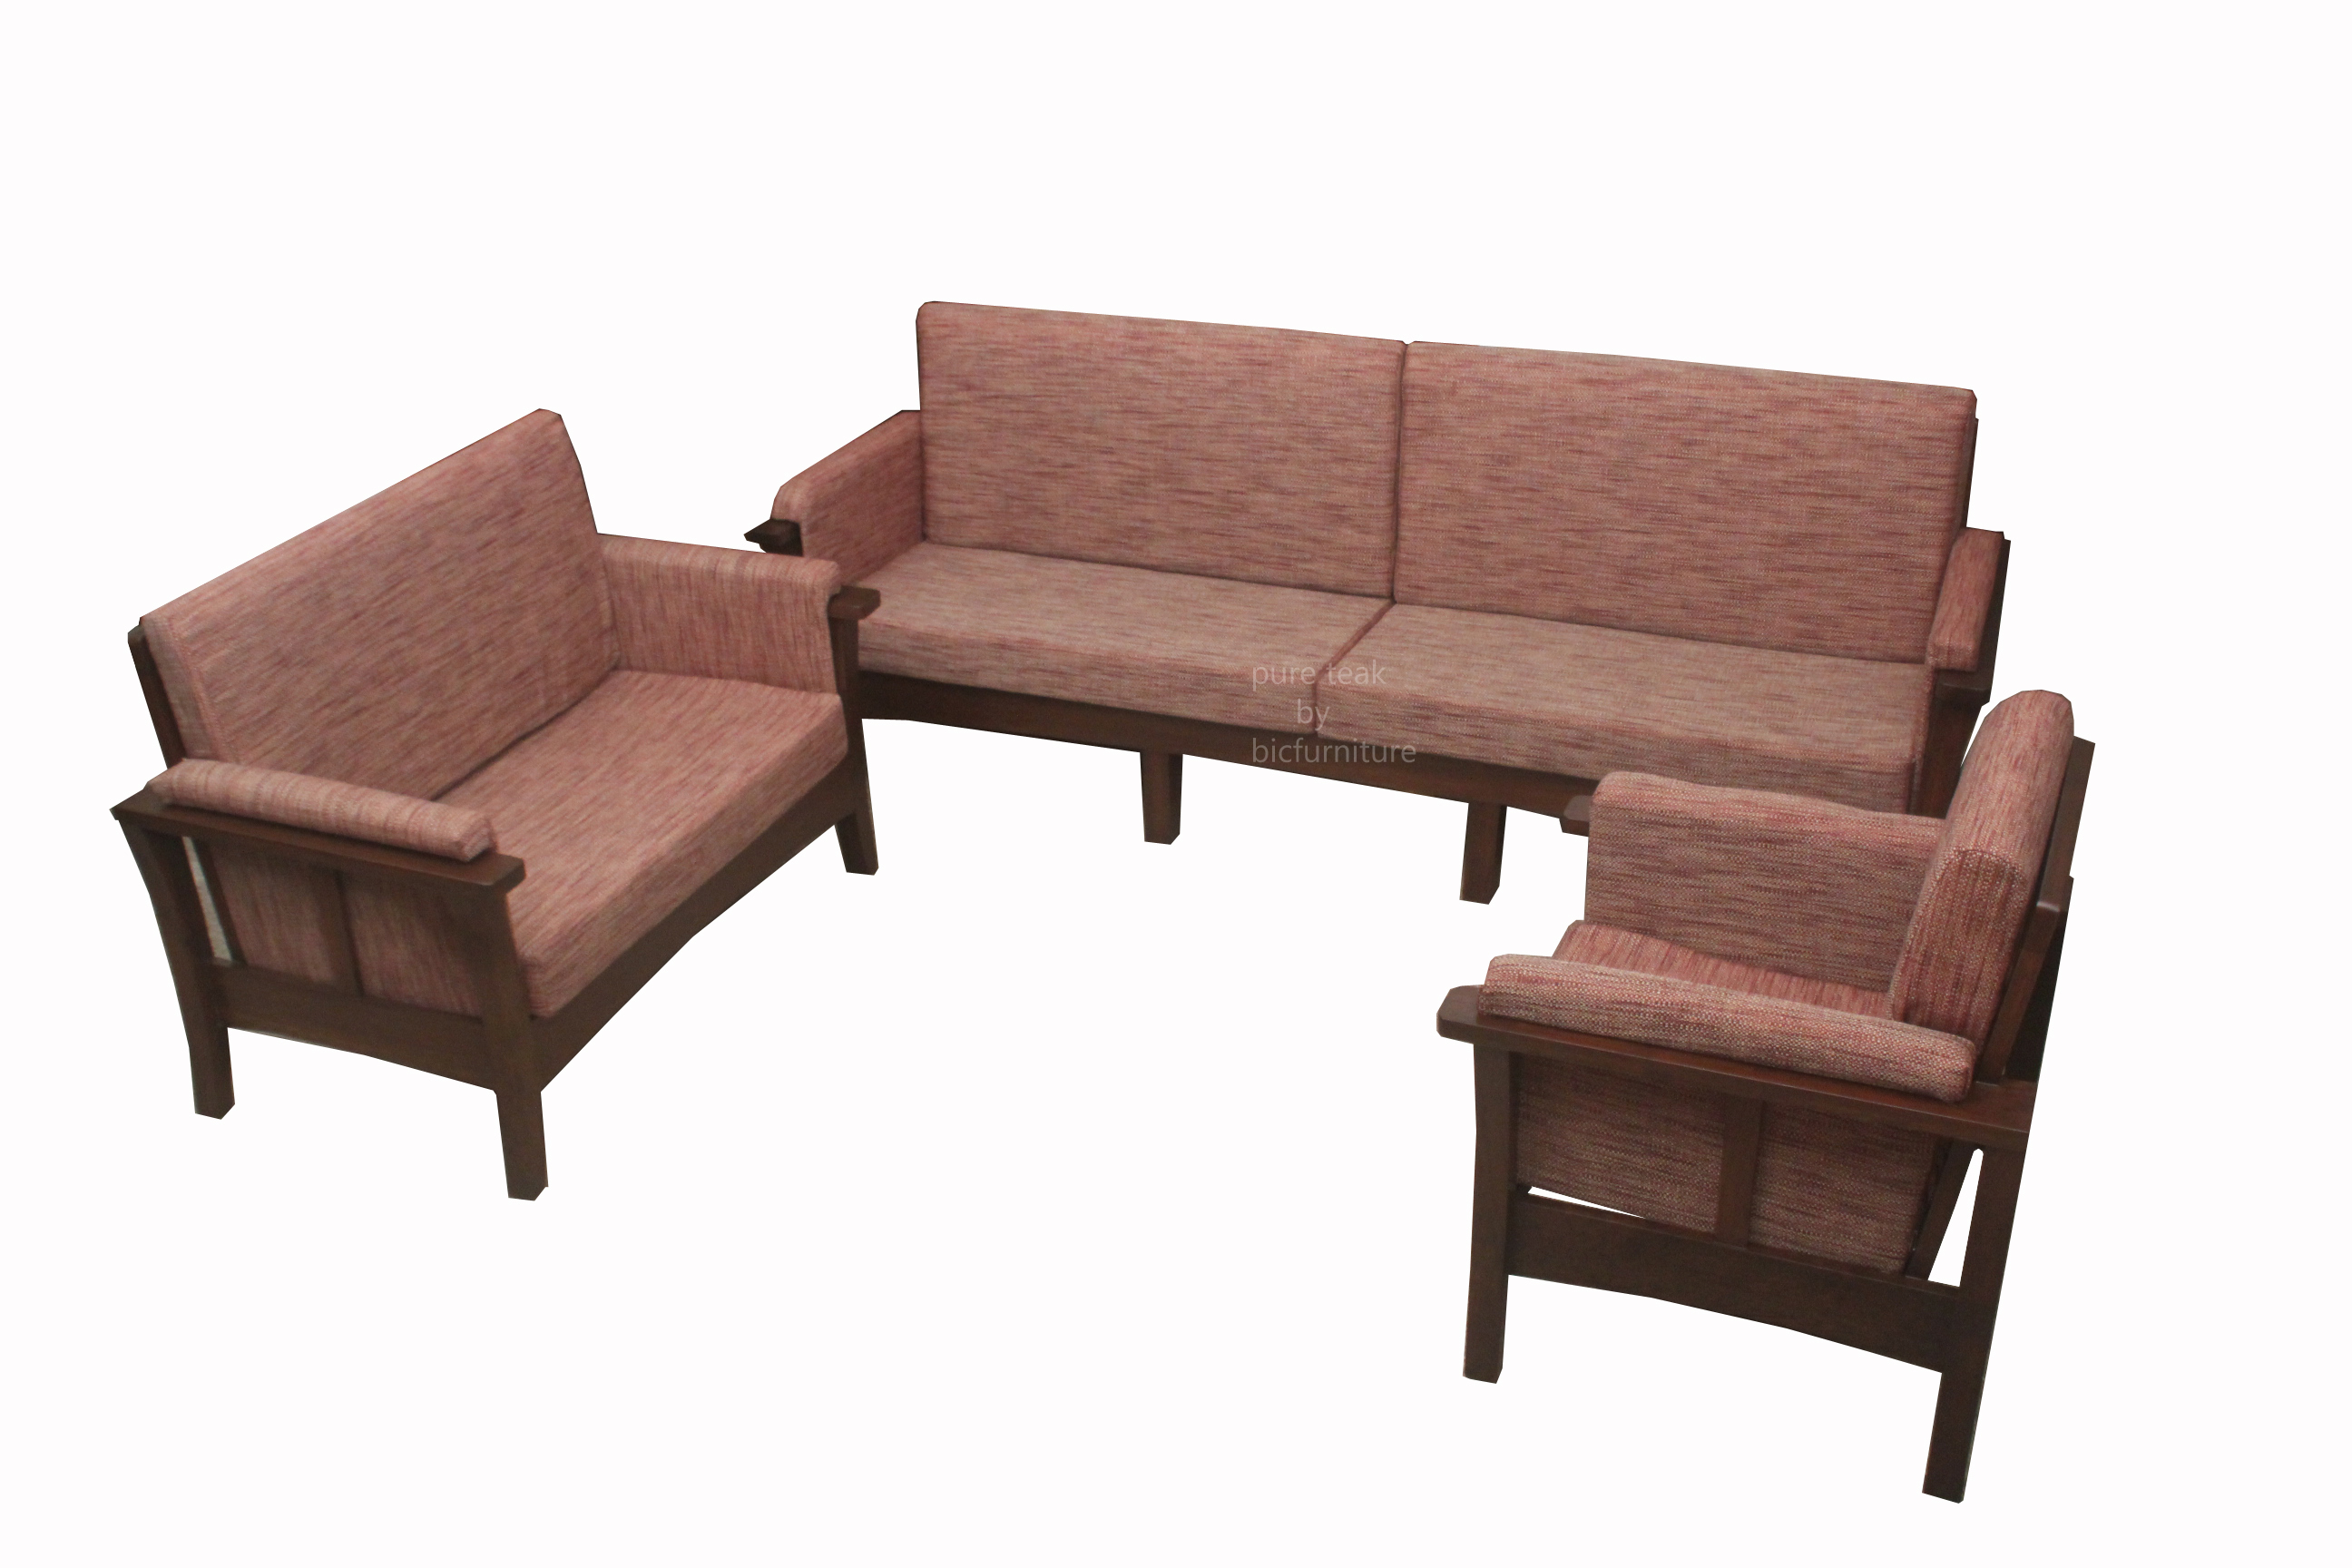 Stylish Teakwood Sofa Set In A Set Of 3 With Cushioned Handles